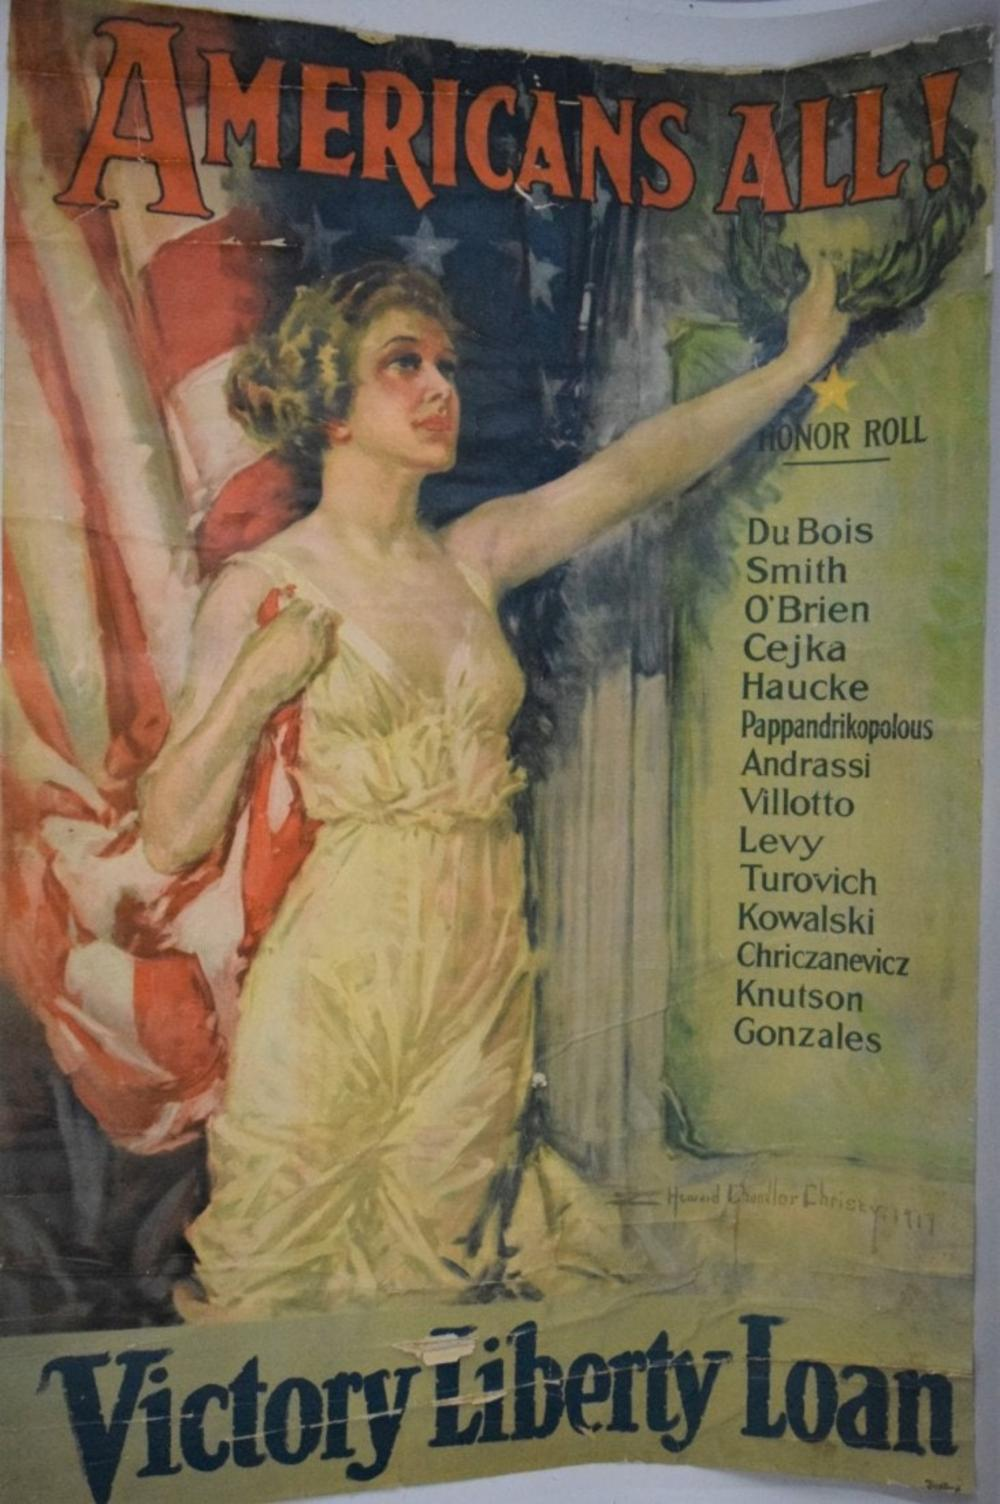 Victory Liberty Loan Poster (Howard Christy Chandler)